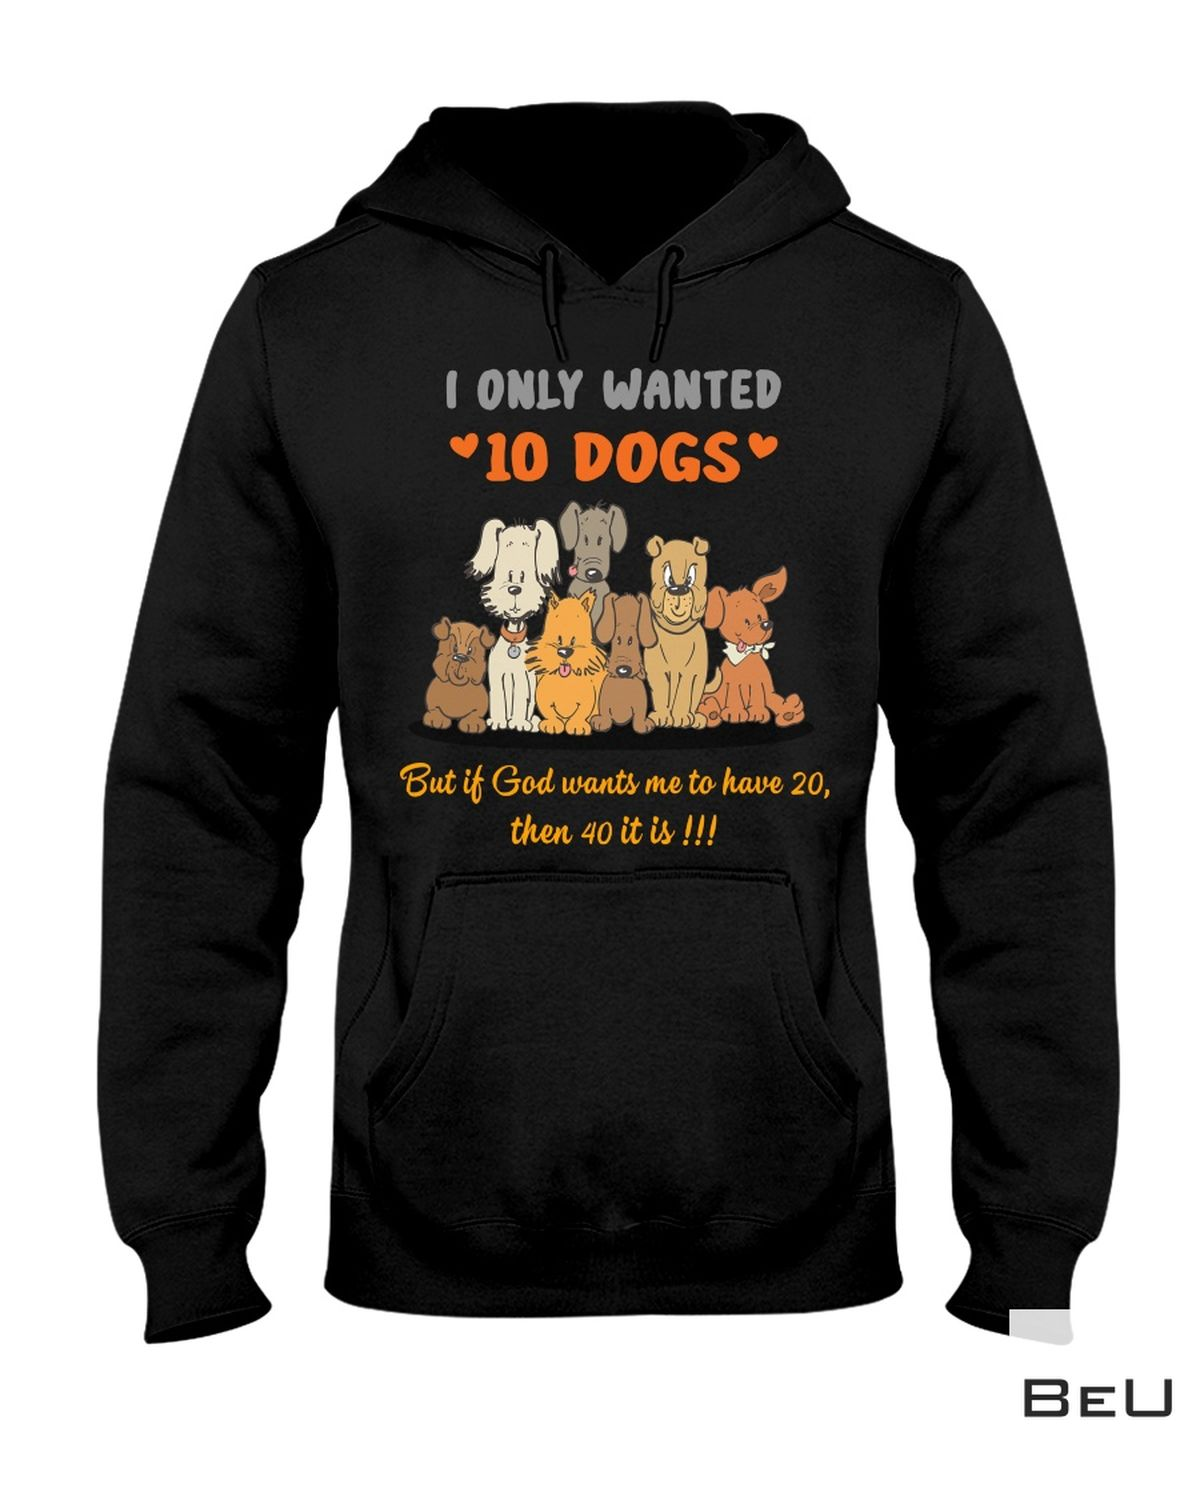 Excellent I Only Wanted 10 Dogs But If God Wants Me To Have 20 Shirt, hoodie, tank top